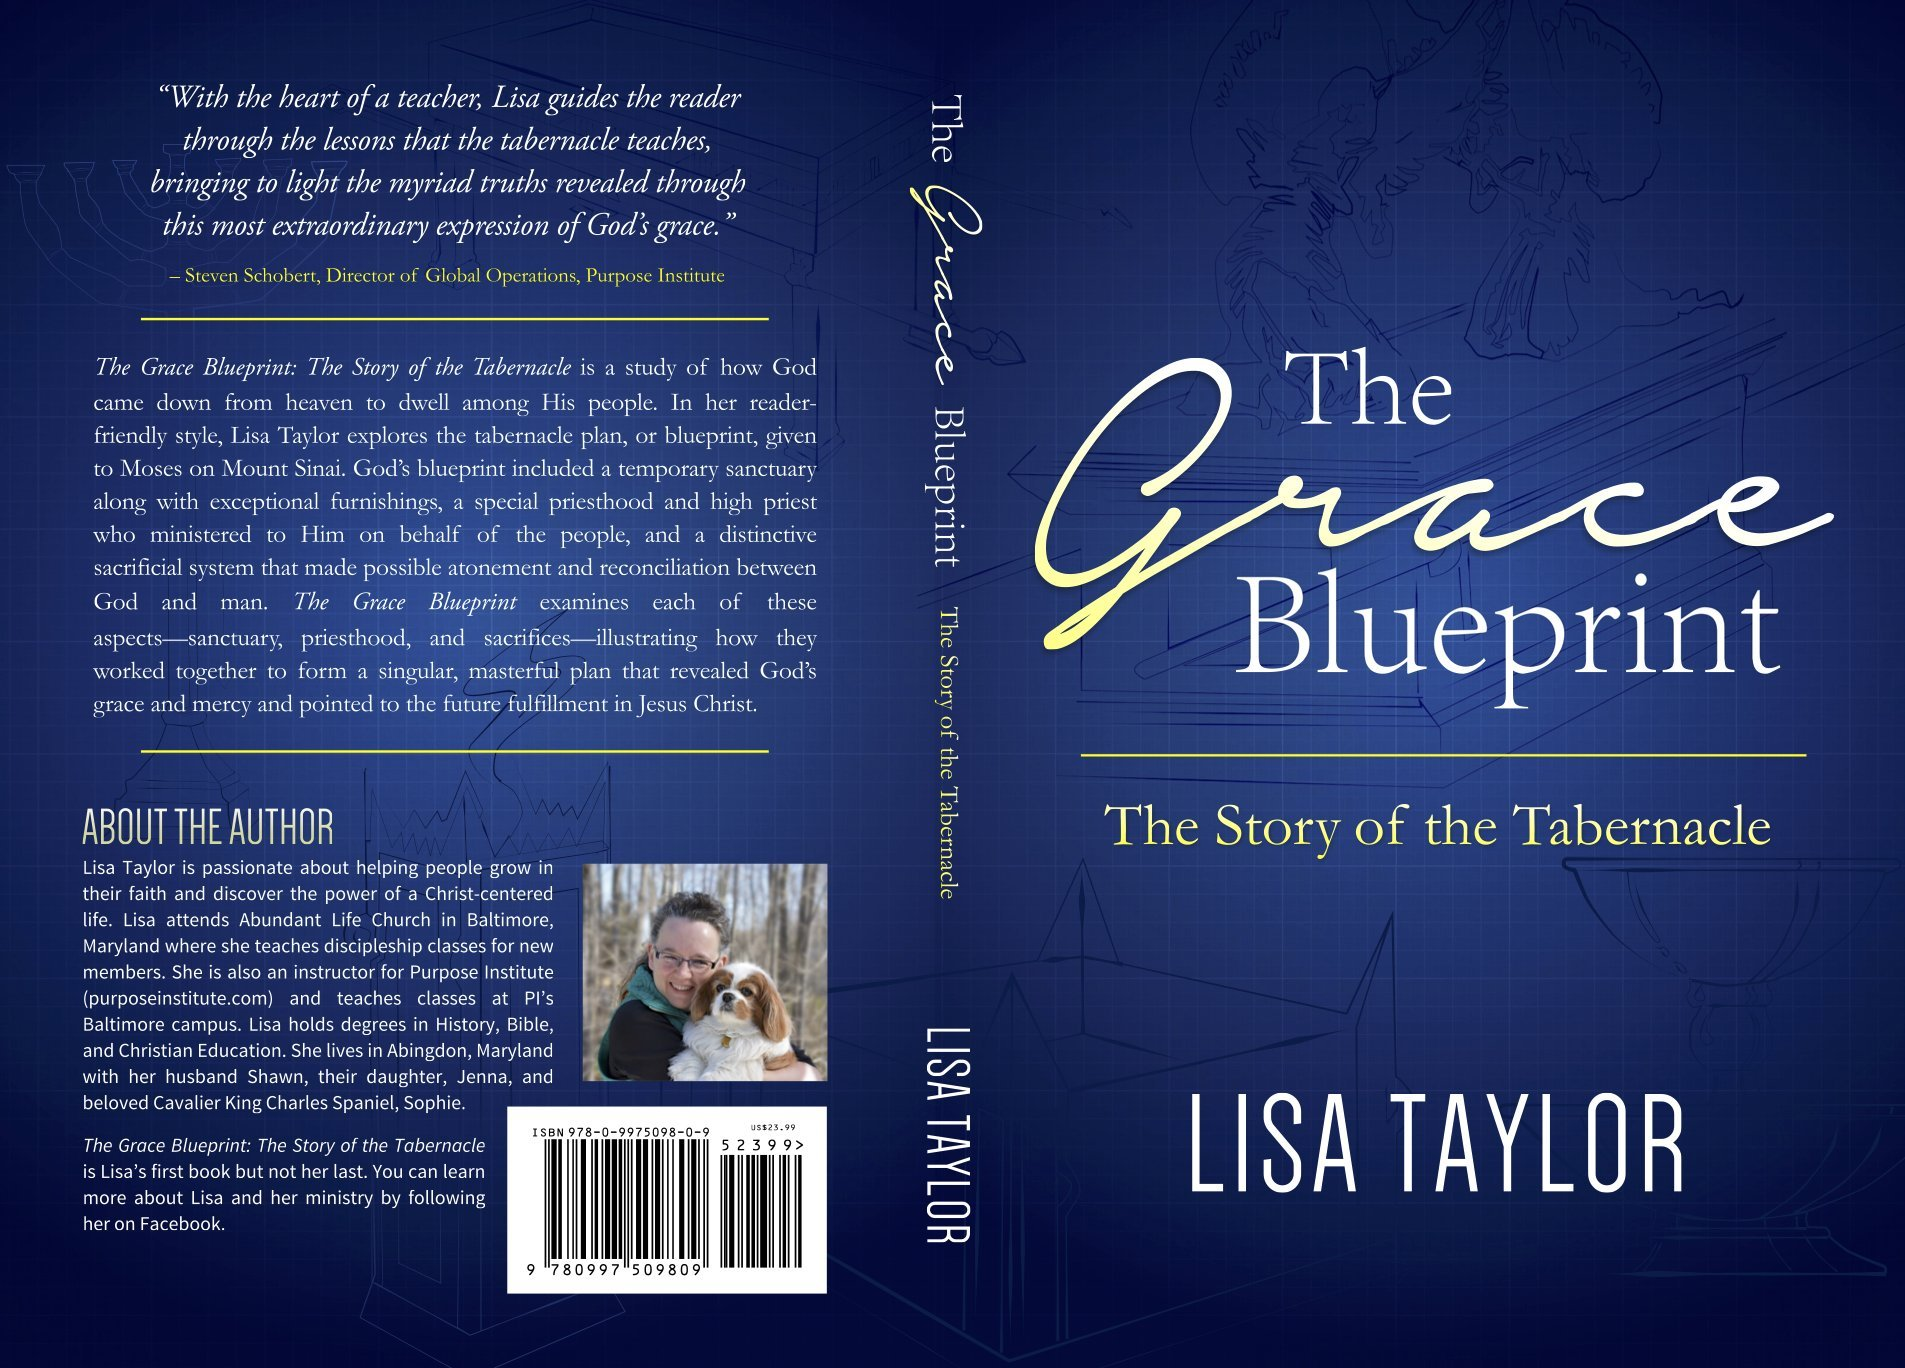 The grace blueprint the story of the tabernacle lisa taylor the grace blueprint the story of the tabernacle lisa taylor 9780997509809 amazon books malvernweather Gallery